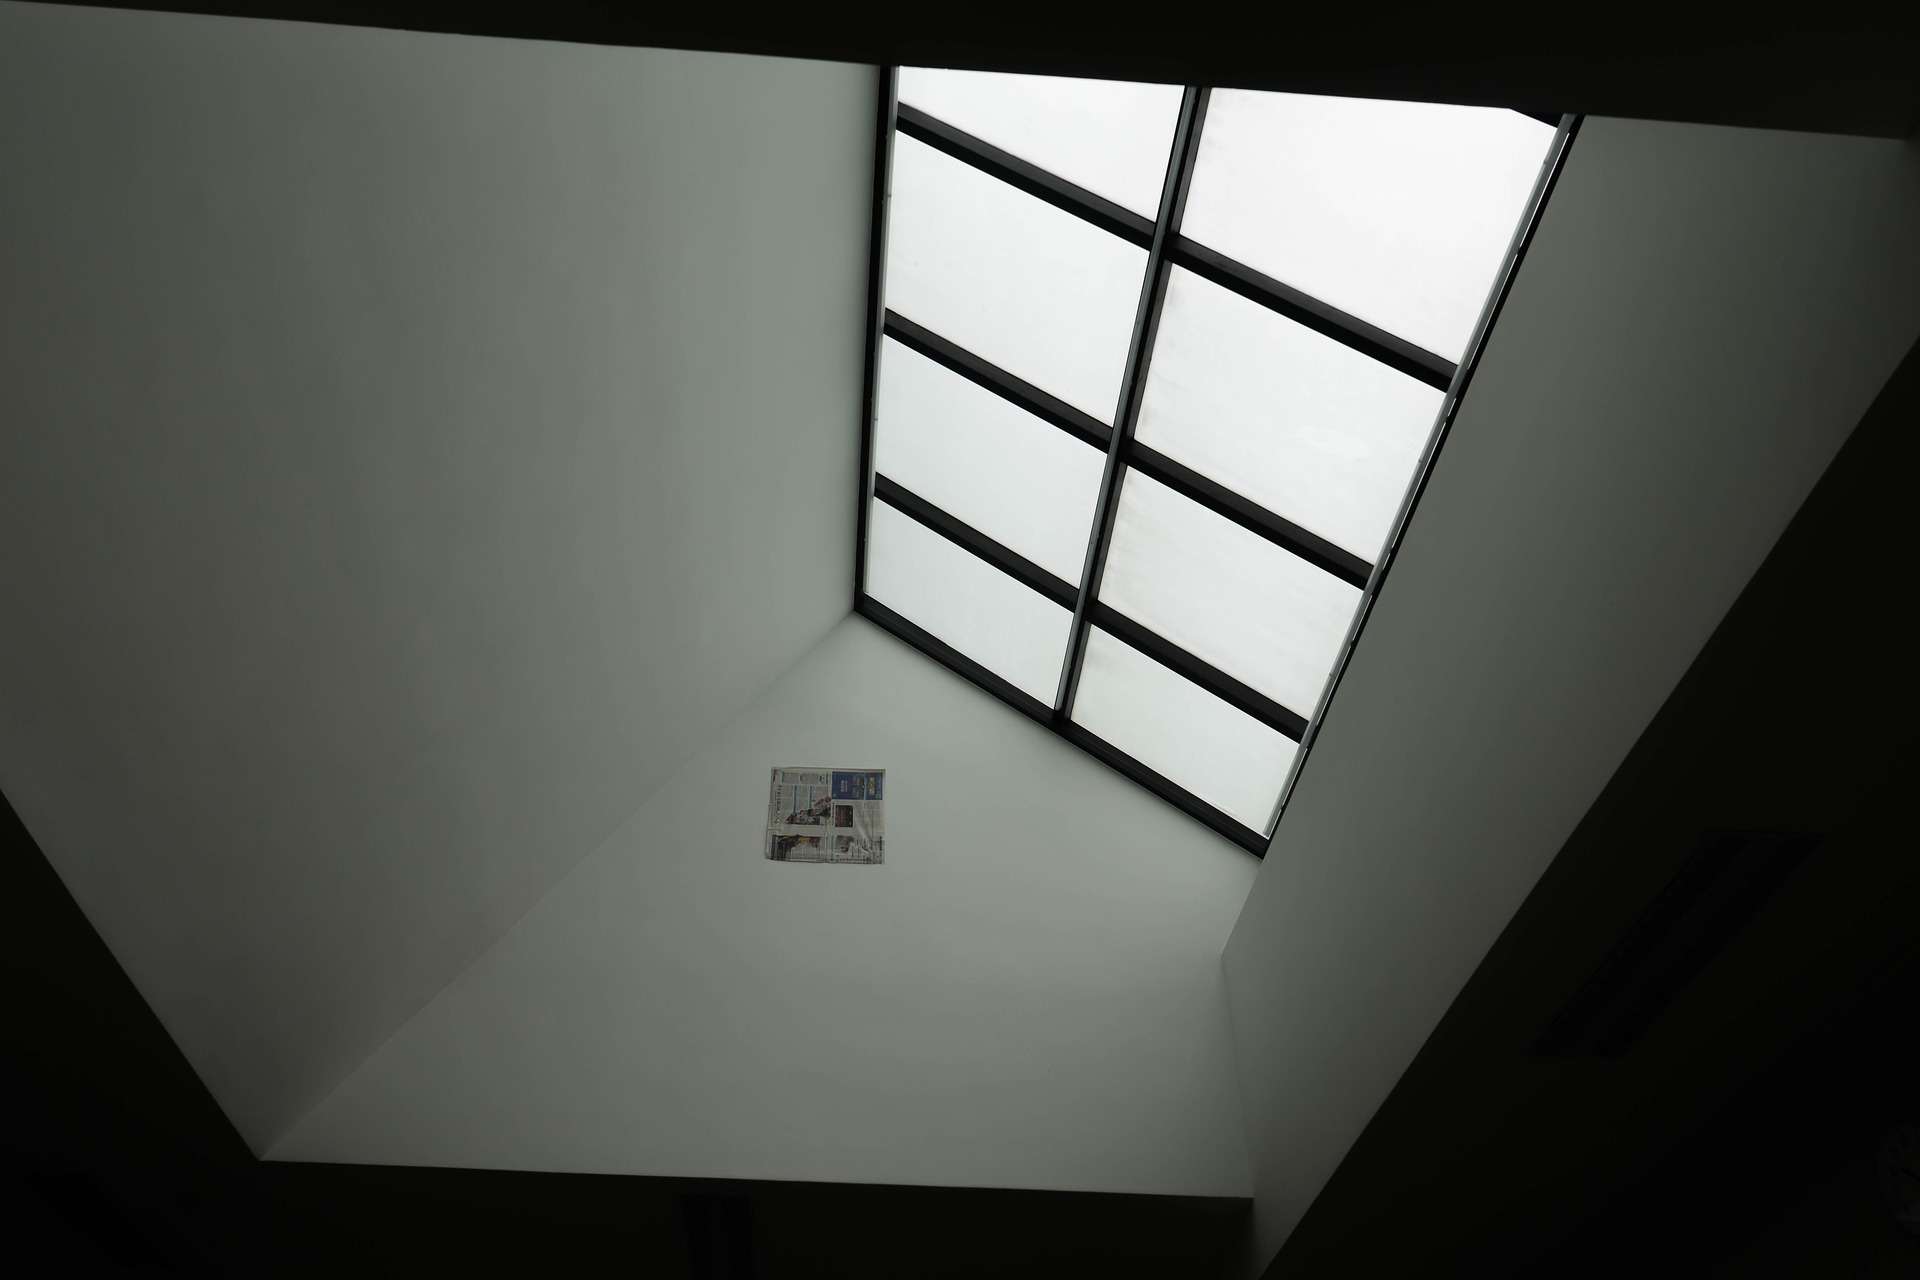 skylight in a residential home with natural light